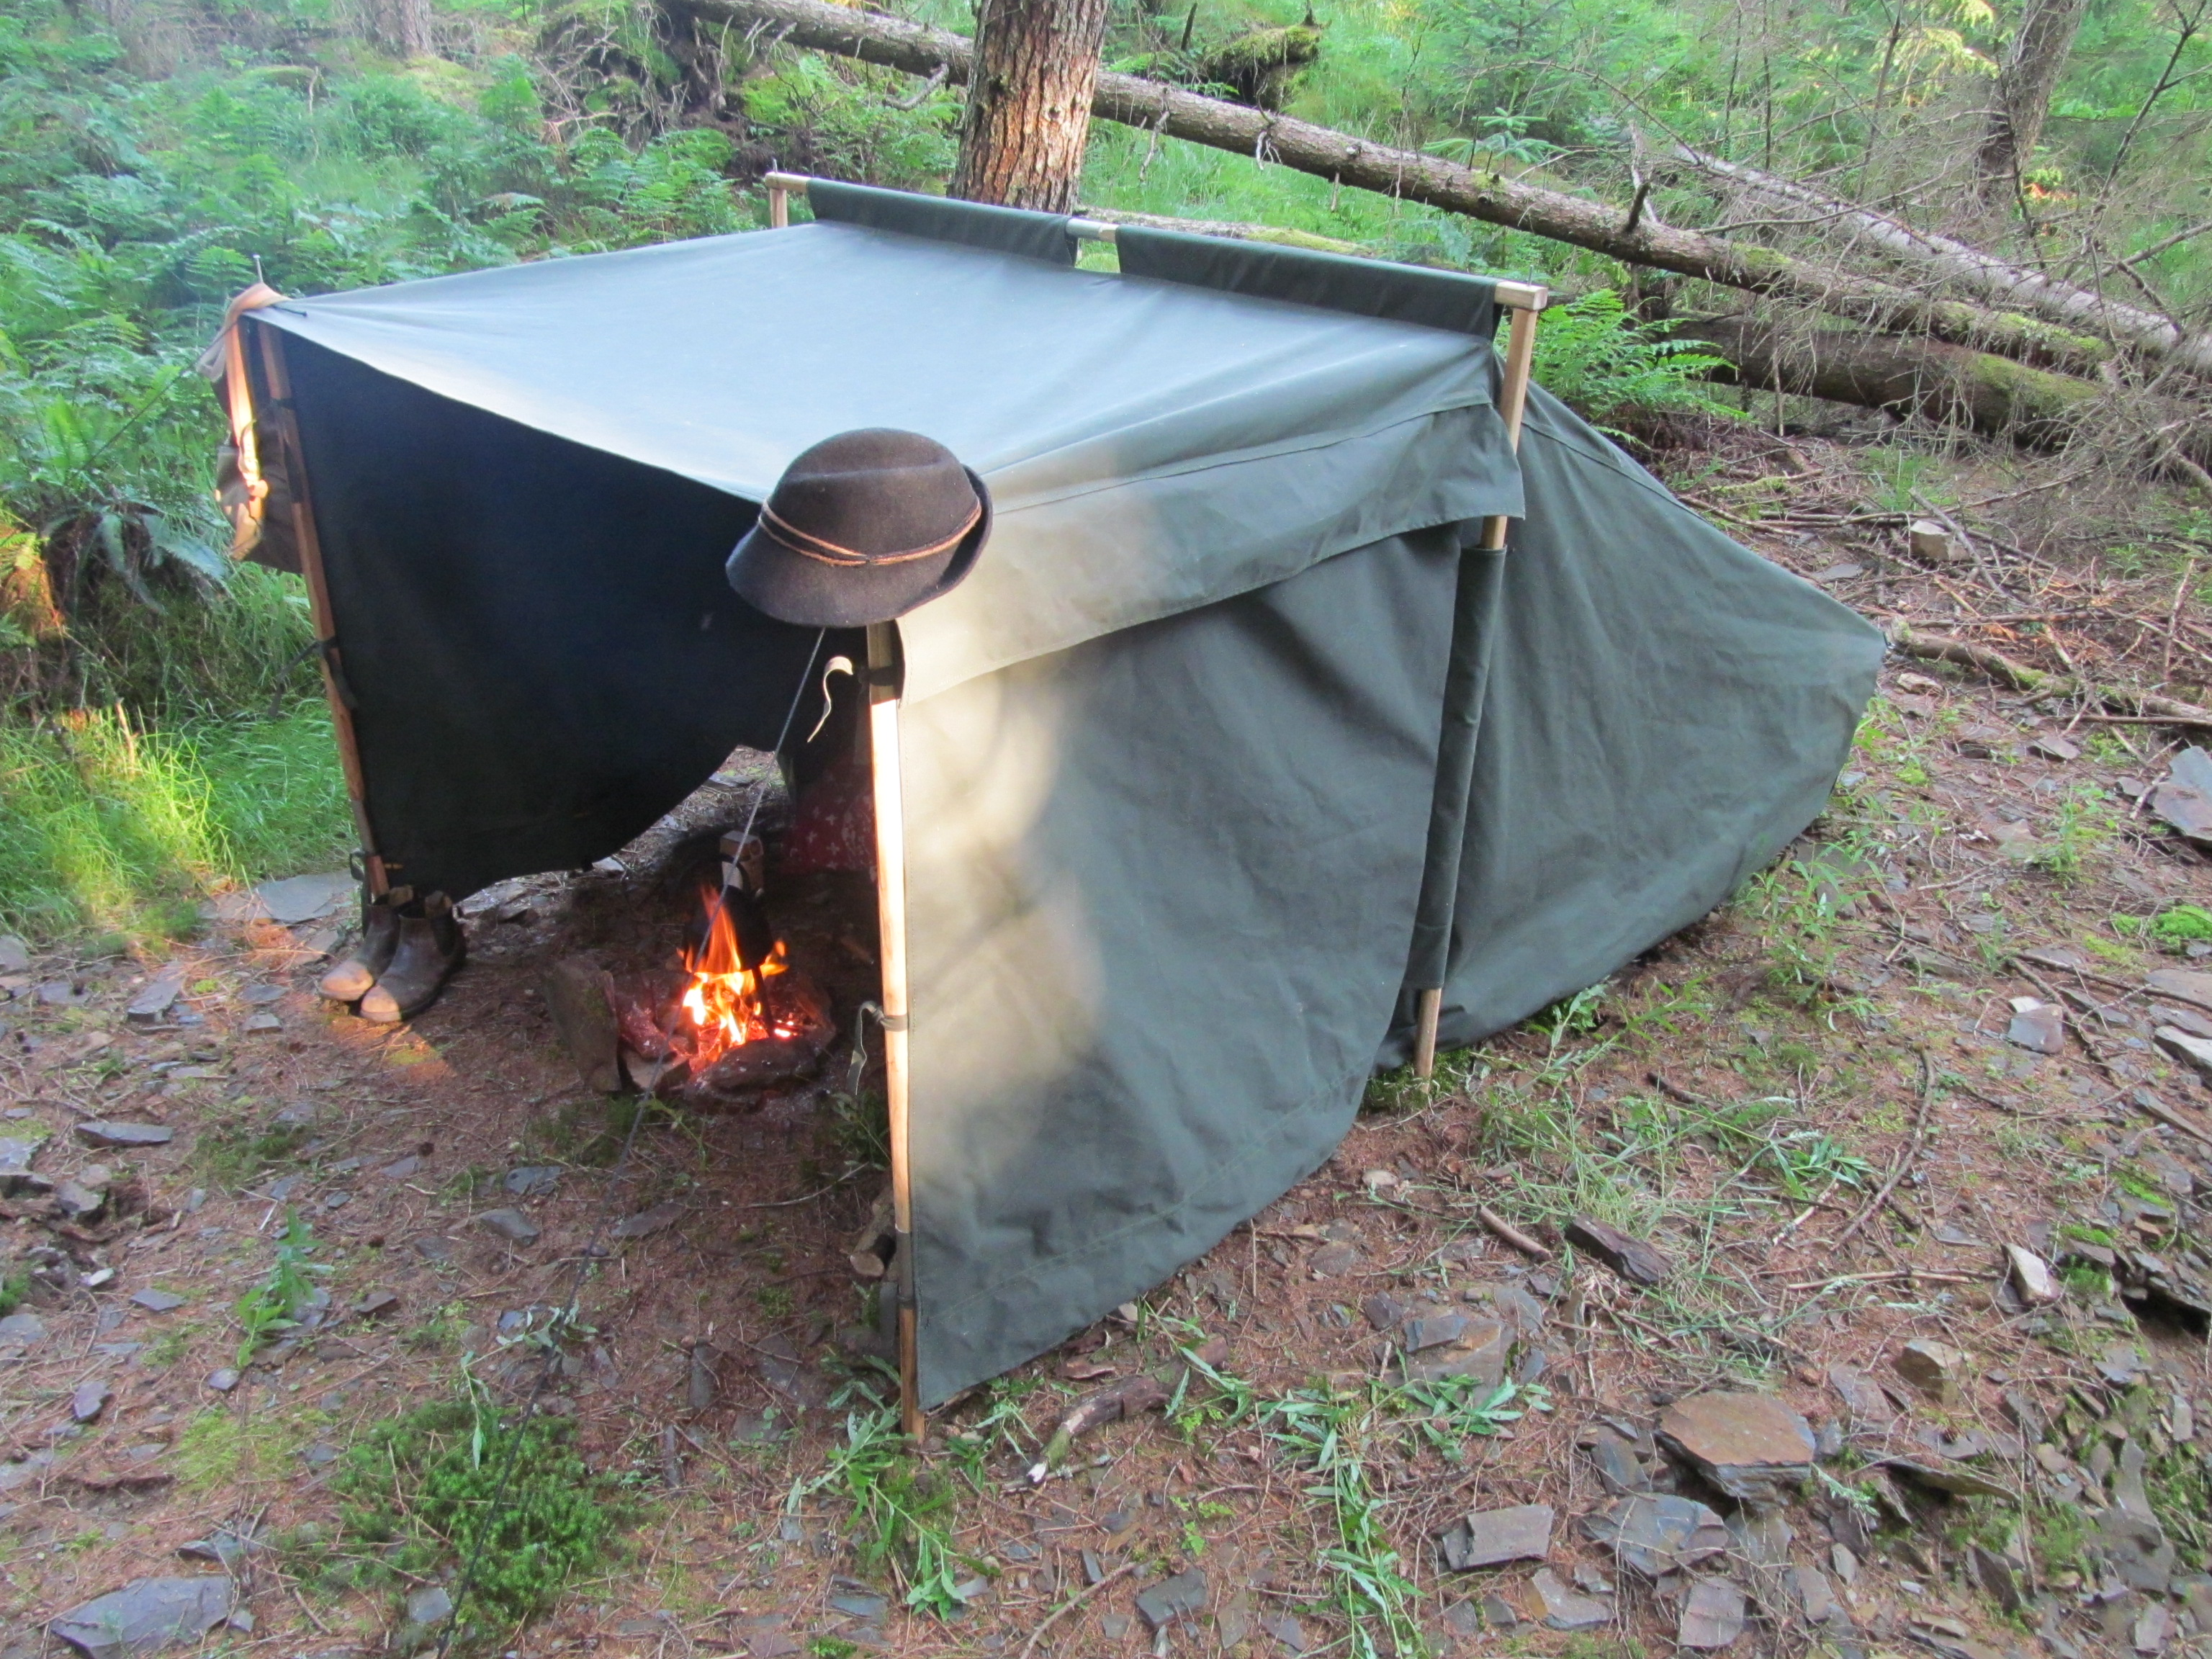 Drawn campire tent I Baker Tent Baker this